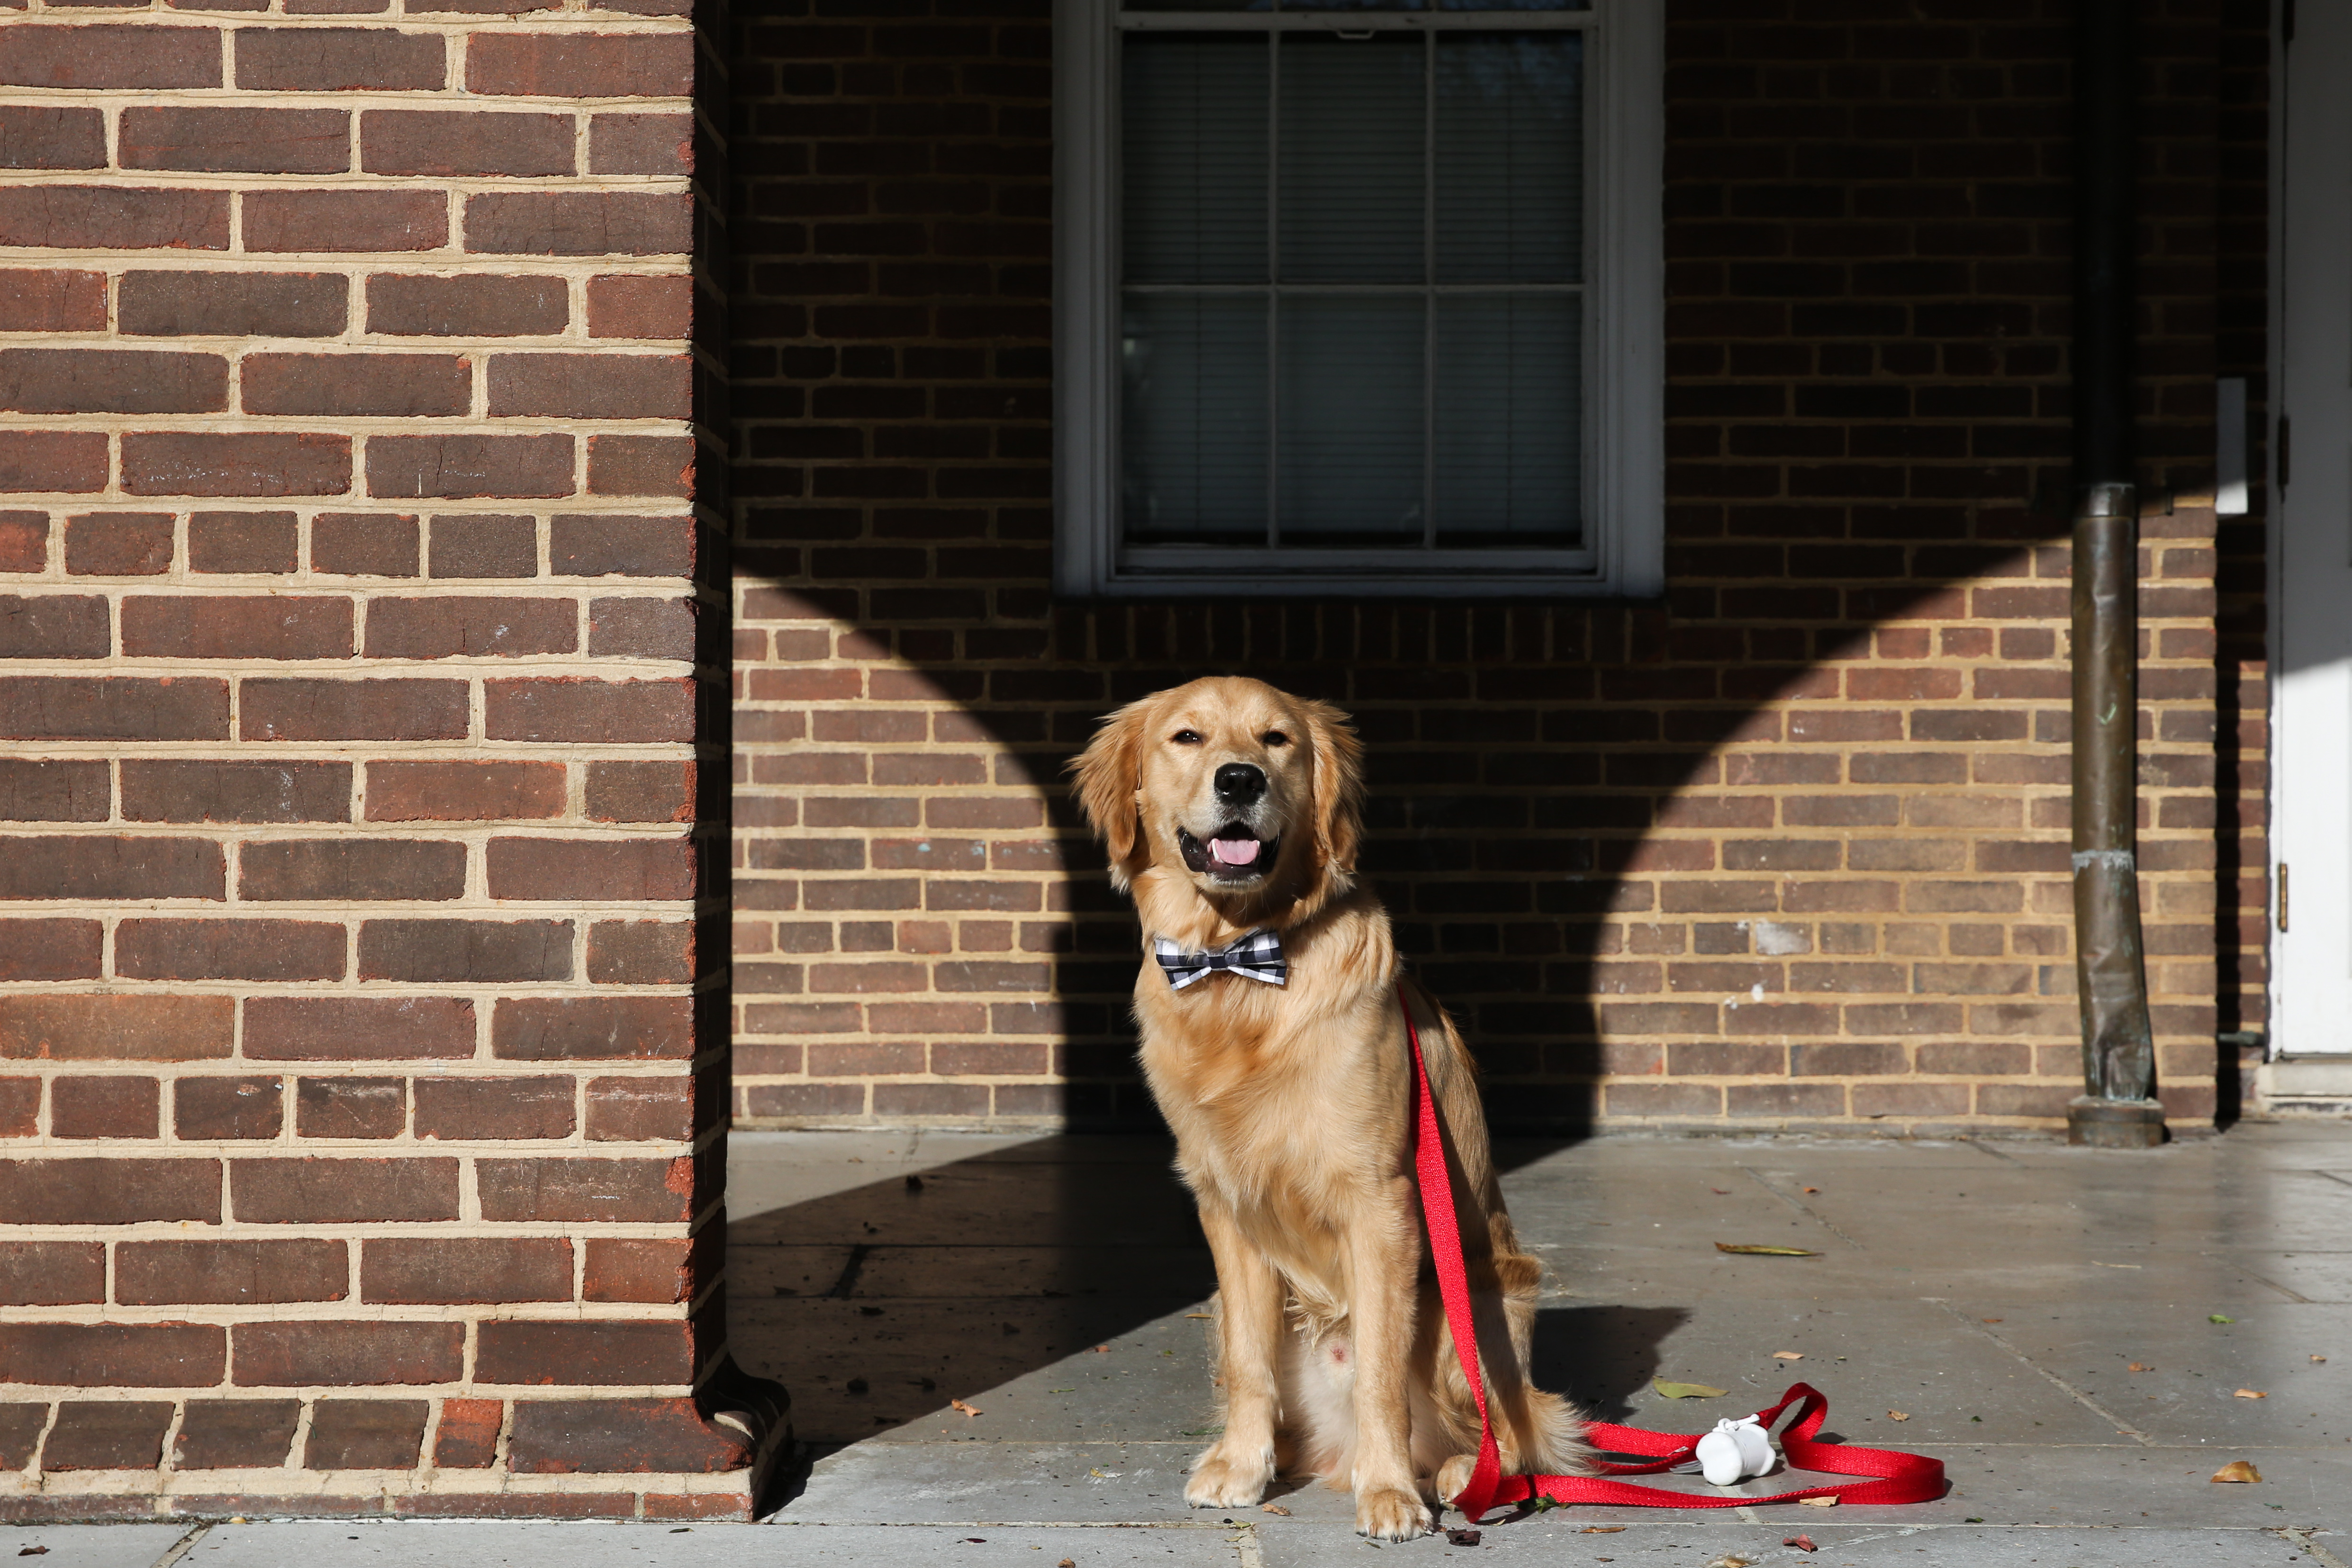 Meet Brinkley, a nine-month-old Golden Retriever pup who hails from Charlottesville, Virginia. Brinkley LOVES food -- from peanut butter to watermelon, strawberries, hardboiled eggs and bok choy, he'll pretty much eat it all! He also loves to meet new people and dogs, and has no concept of stranger danger. Similar to his human mom (who collects rubber ducks), Brinkley likes duck toys. Brinkley loves the winter but isn't a big fan of the D.C. summer heat. In the summer, he goes straight to the A/C. In the winter, he likes to lie next to the window where the floor is a bit colder. He's also not a huge fan of baths. Since he came to live with his human family, Brinkley has been to UVA twice, and even went apple picking at nearby Carter Mountain Orchard. He always gets affection from students, faculty, and visitors, and he loves the Lawn and the Rotunda -- Brinkley is definitely a Hoos boy! You can follow Brinkley's life of adventures on his Instagram account @brinkleyfromva. If you or someone you know has a pet you'd like featured, email us at dcrefined@gmail.com or tag #DCRUFFined and your furbaby could be the next spotlighted! (Image: Amanda Andrade-Rhoades/ DC Refined)